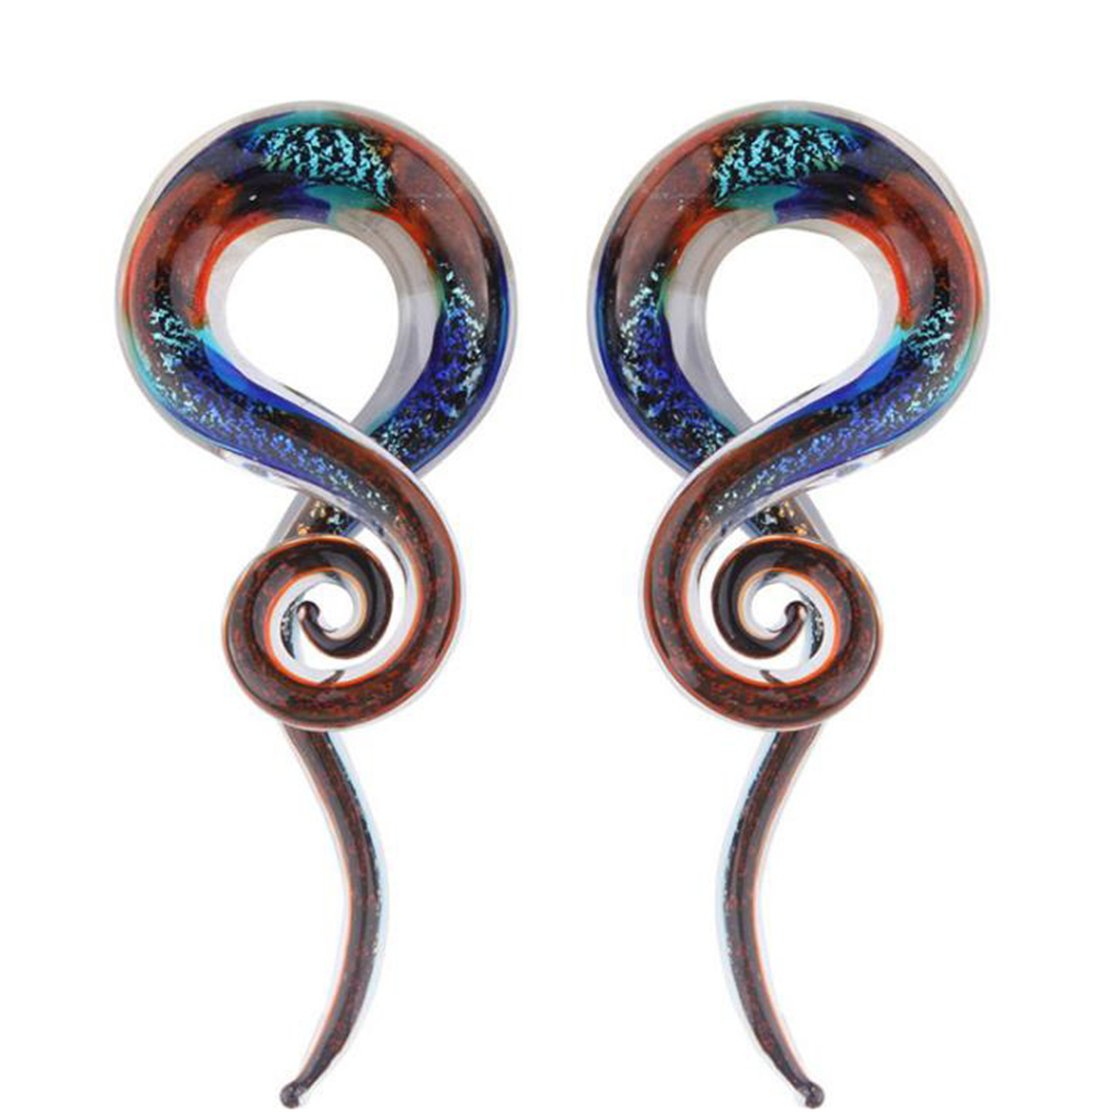 Piercing Ear Stretching Glass Spiral Tapers Ear Plugs Teal Glass Plugs (Gauge=00g(10mm))